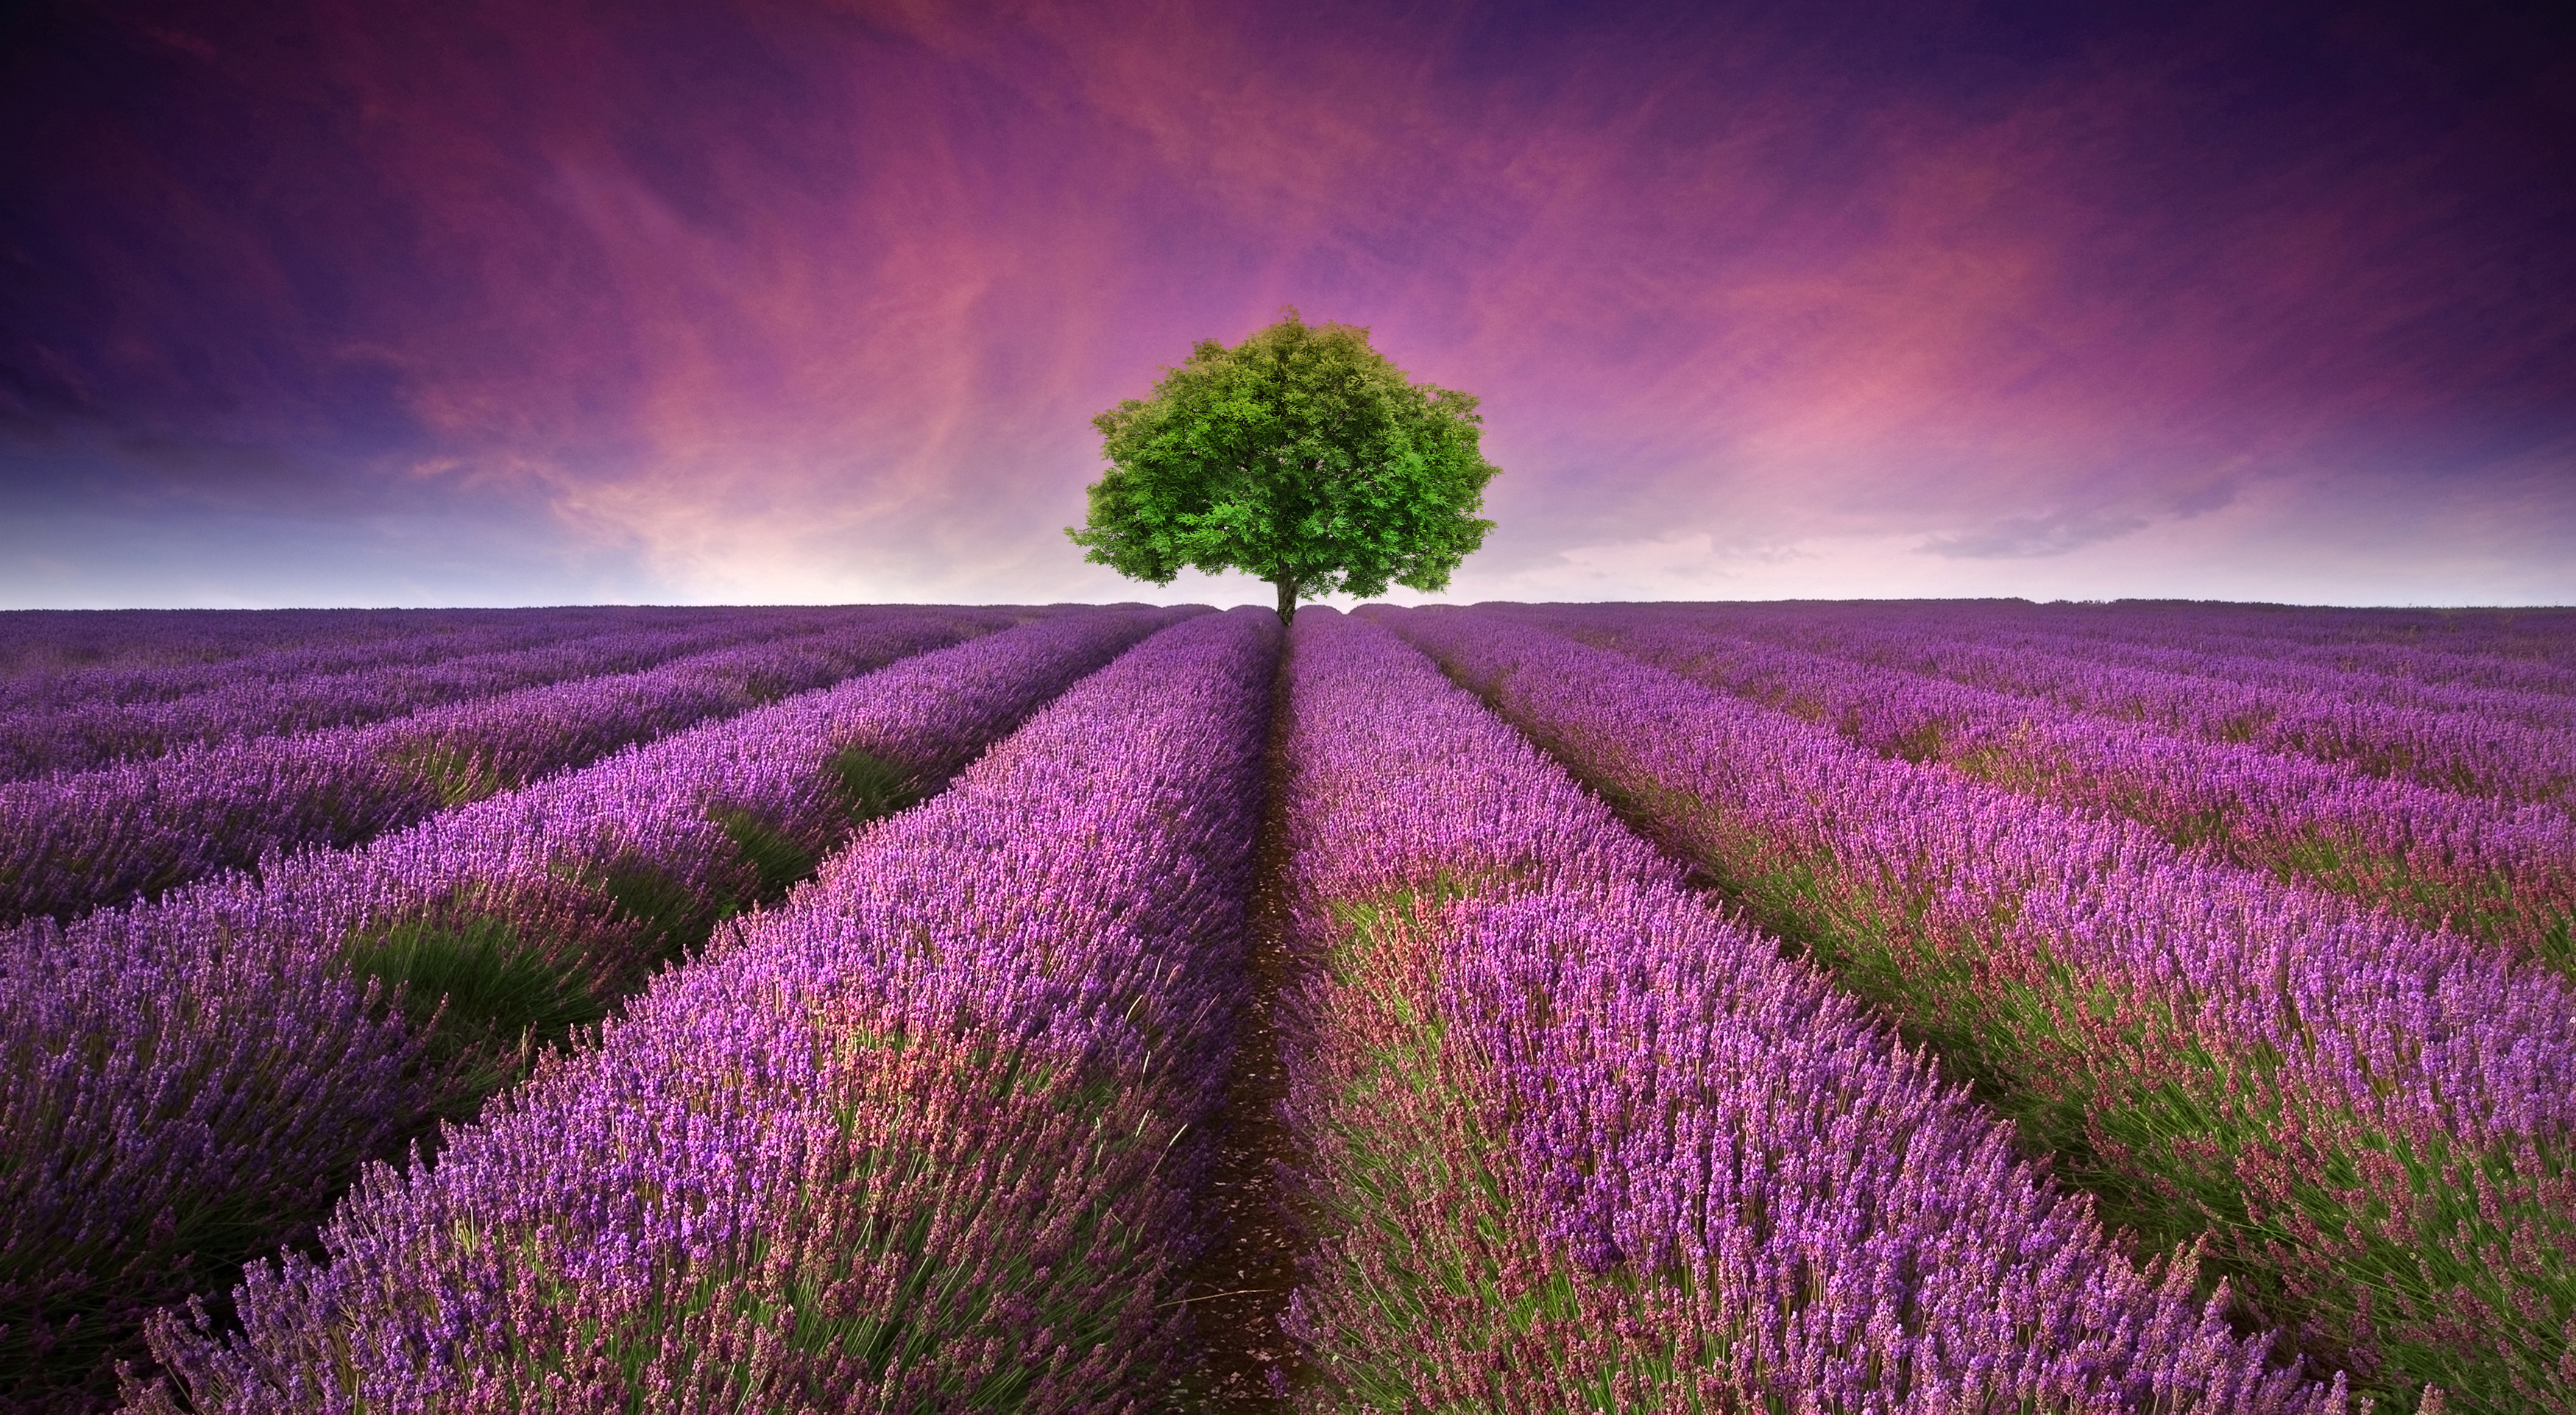 Young Living Essential Oils: Stunning Lavender Field Landscape